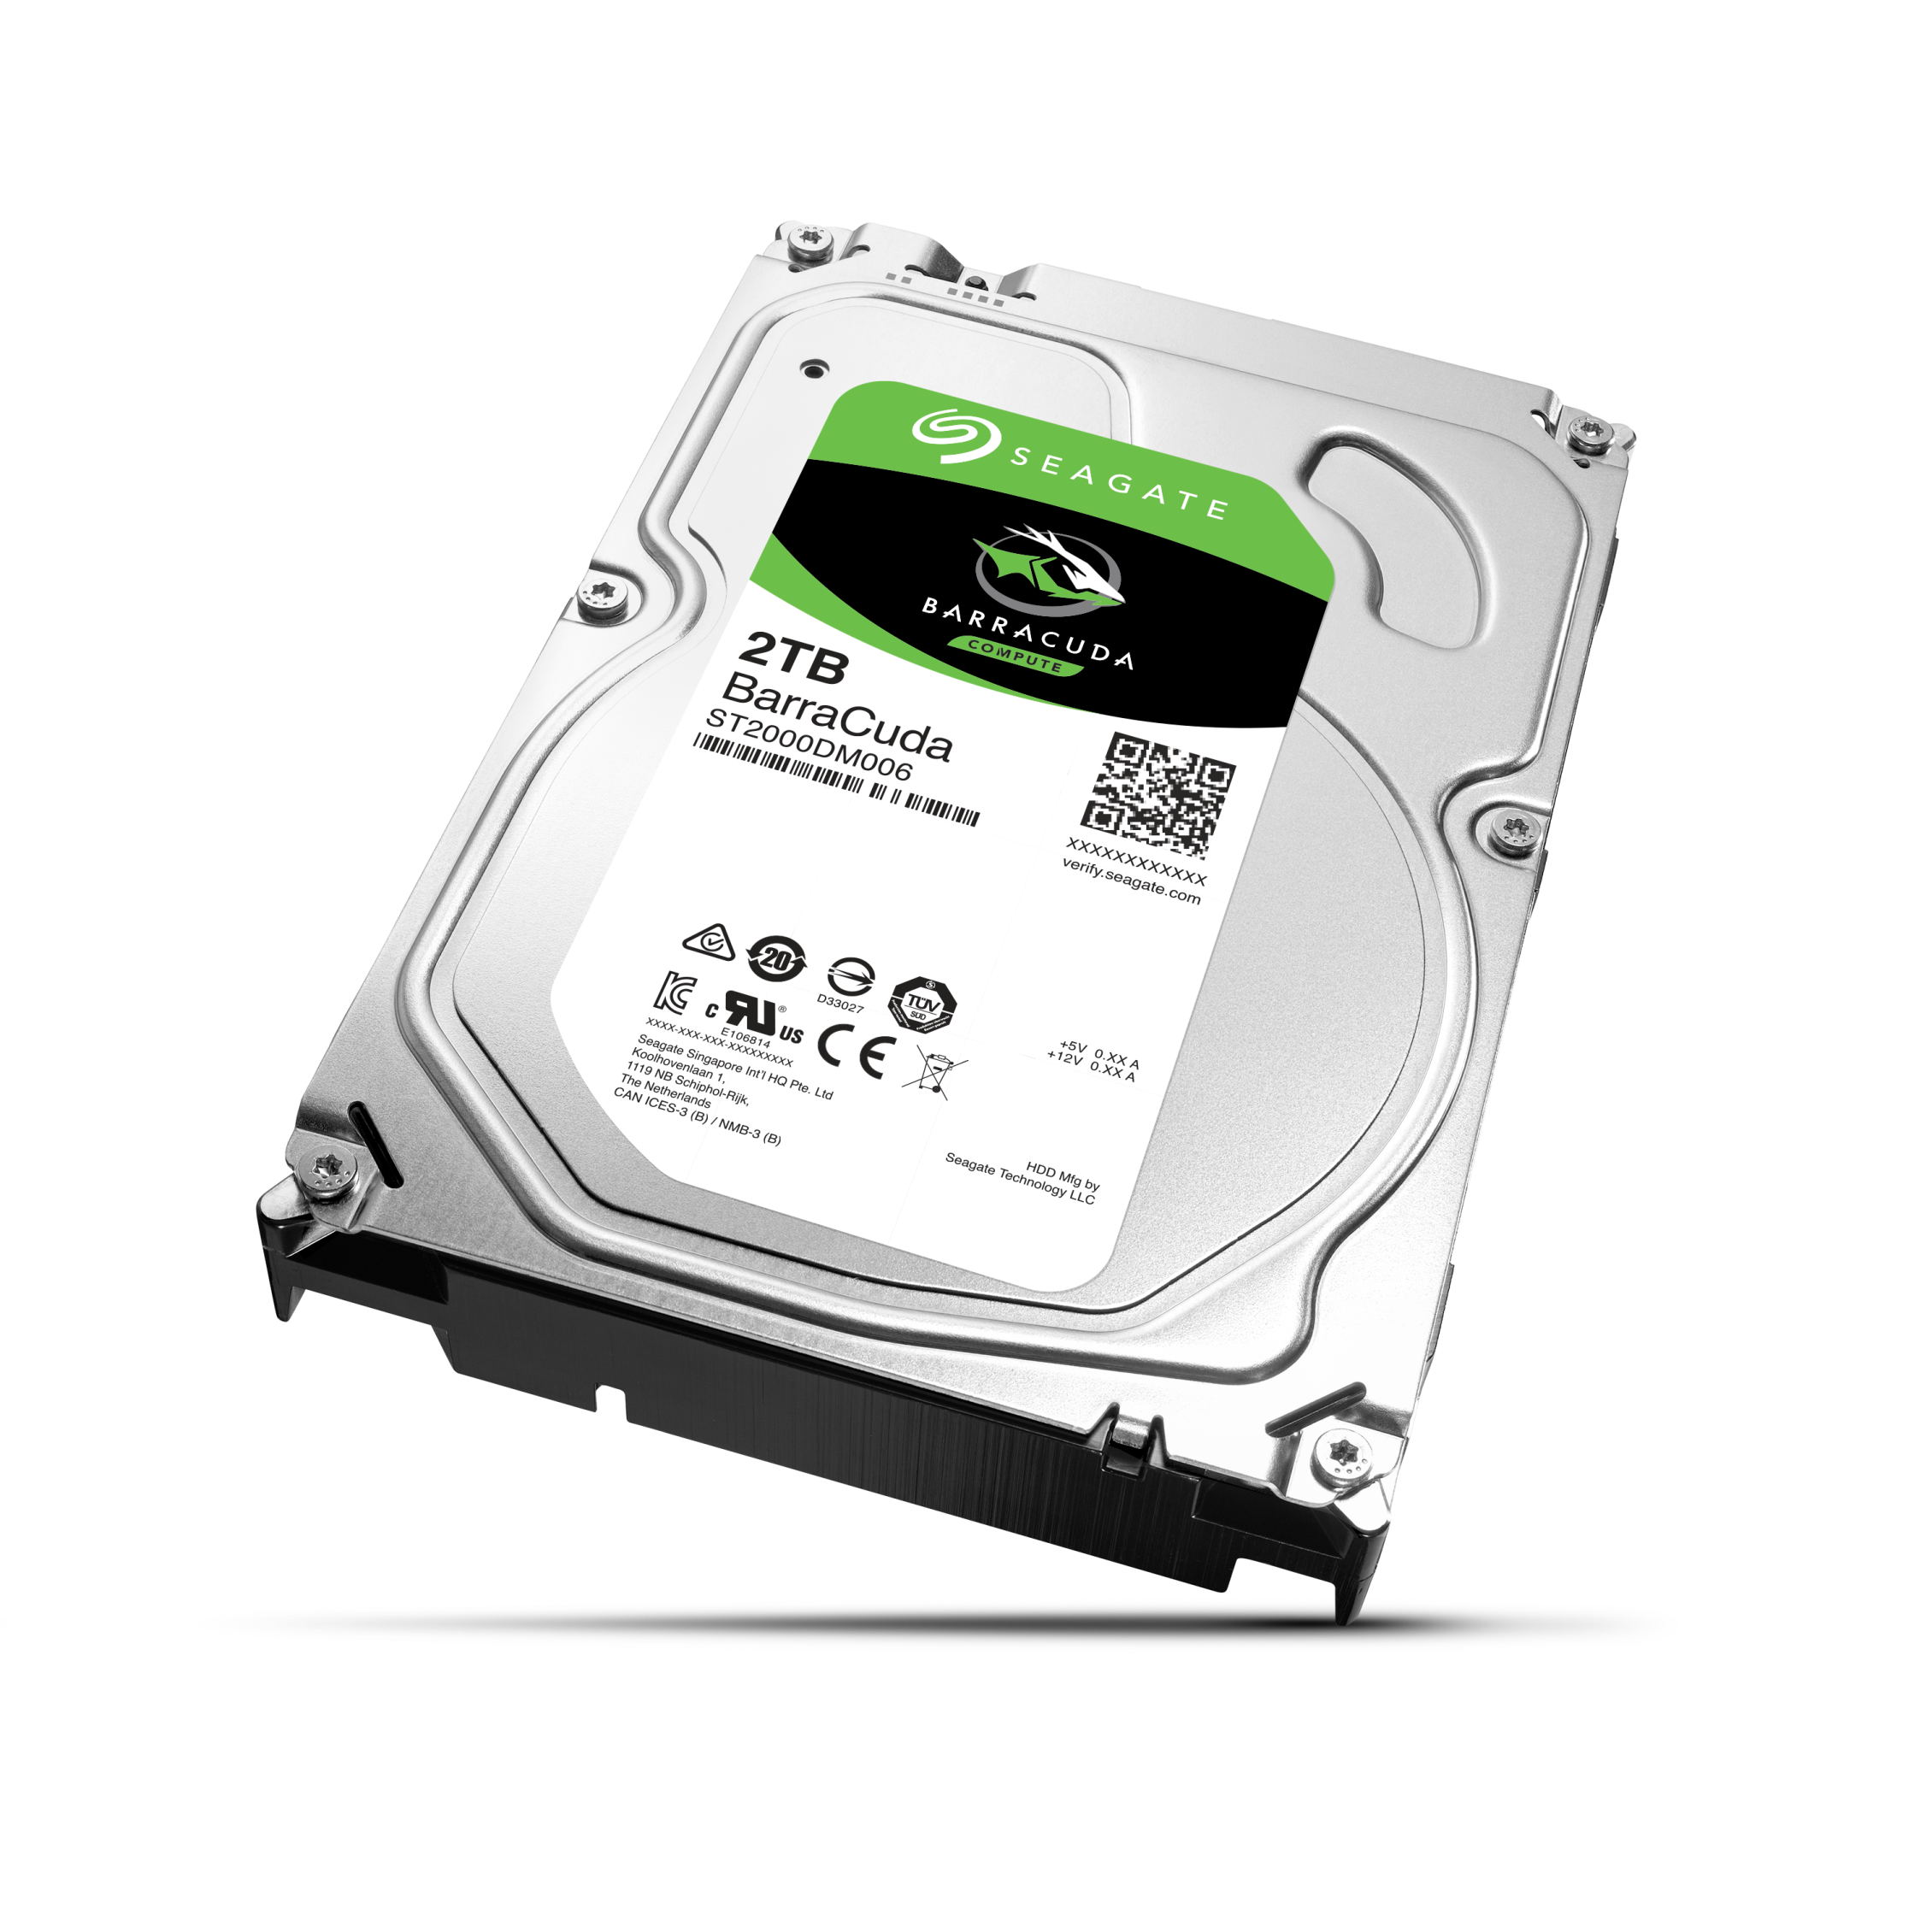 HDD 2TB Seagate Barracuda 64MB SATAIII 7200rpm 2RZ